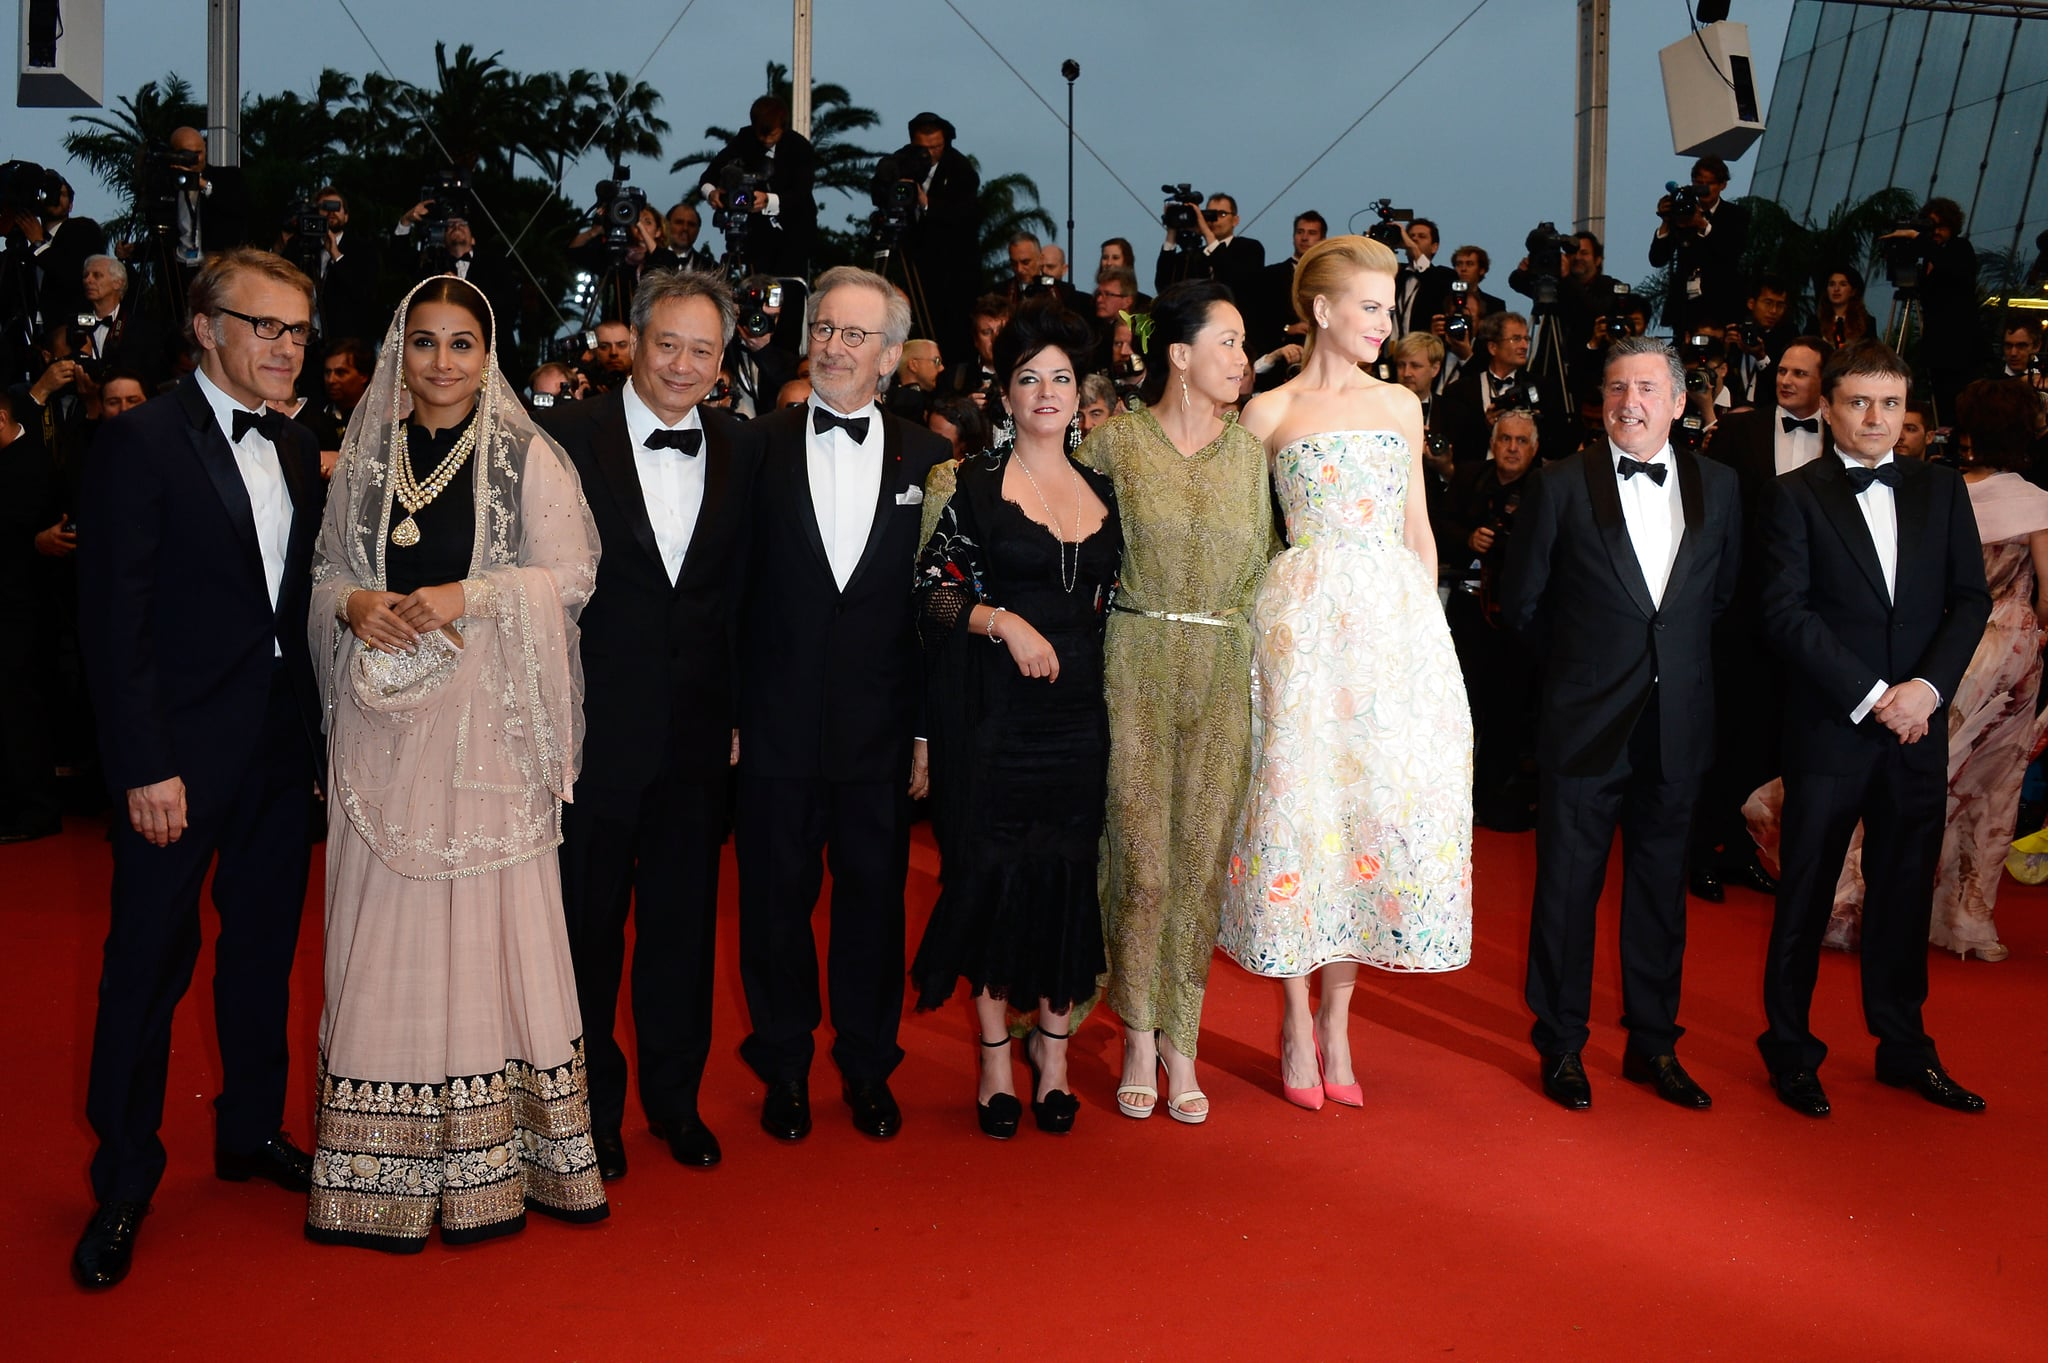 Nicole Kidman, Christoph Waltz, and Steven Spielberg posed with the 2013 Cannes Film Festival jury at the Opening Ceremony on Wednesday.